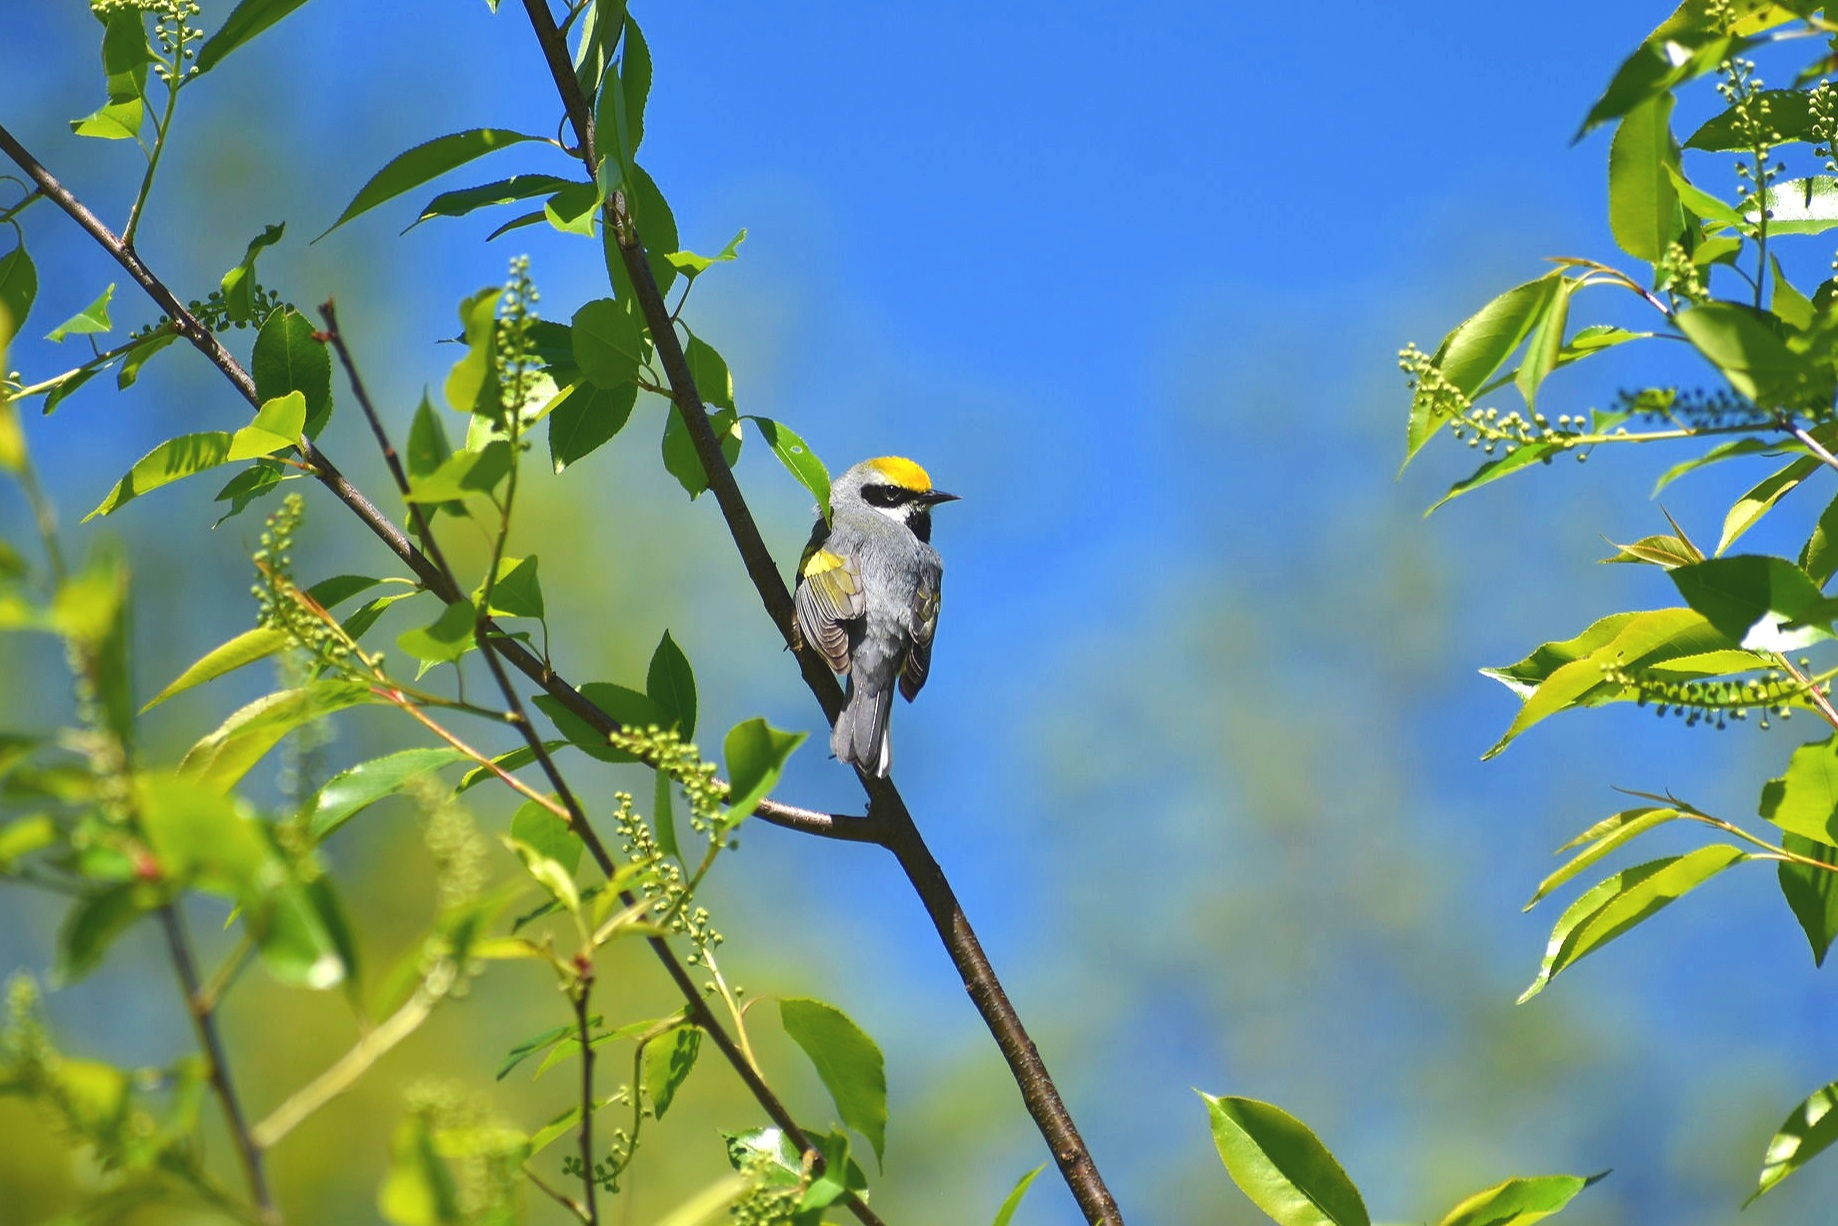 How to Find Golden Winged Warbler